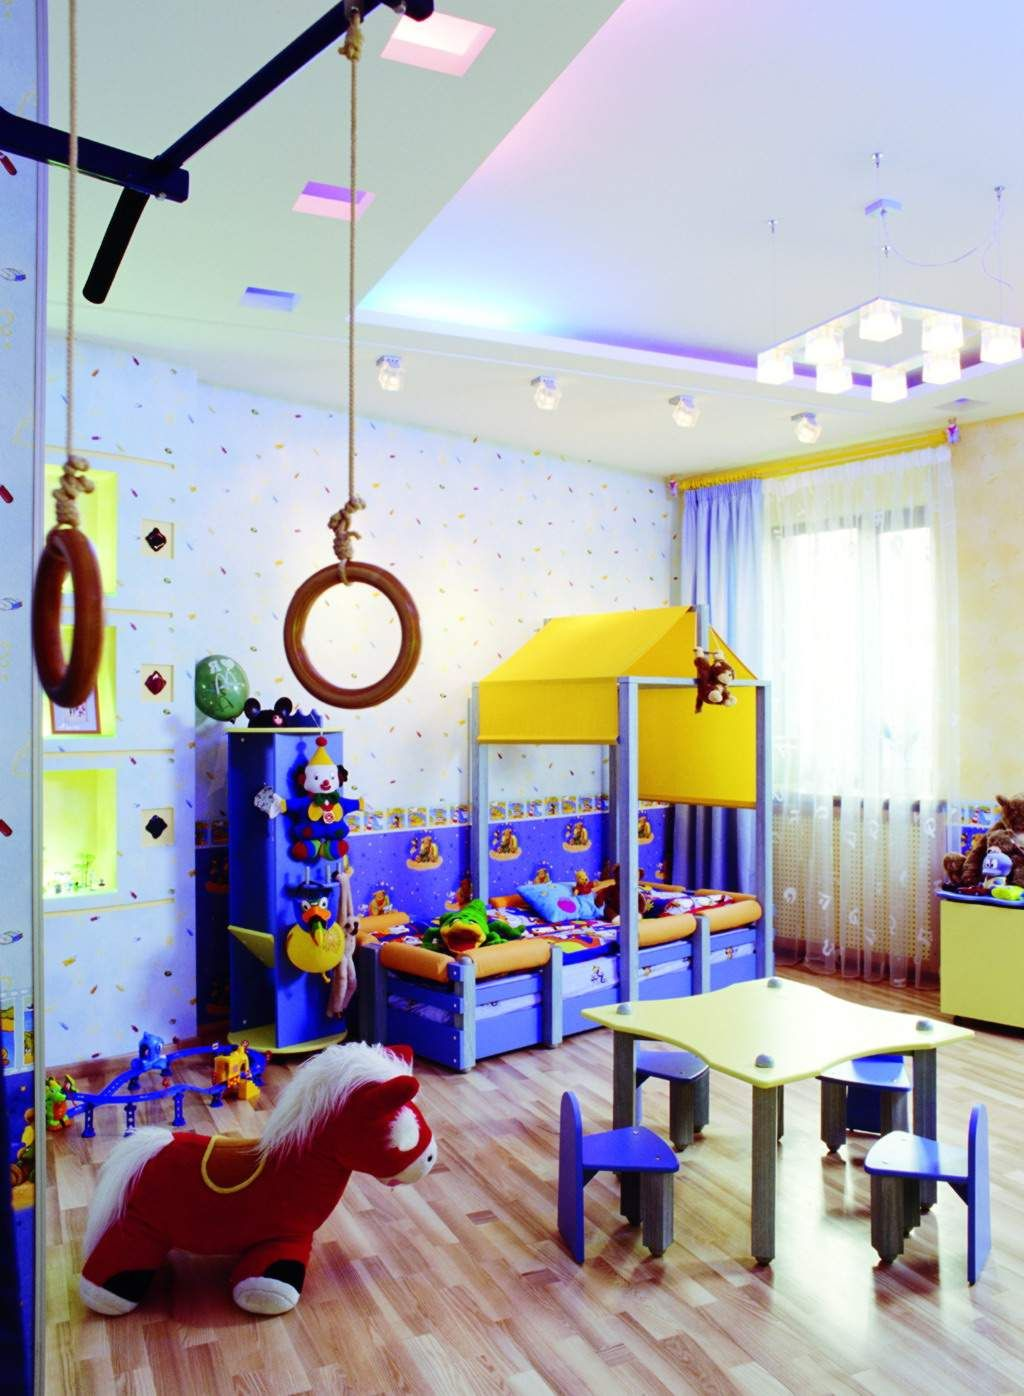 Kids Bedroom Kids Room Interior Design With Play And Learn Area Kids Room  Design With Wallpaper Part 44